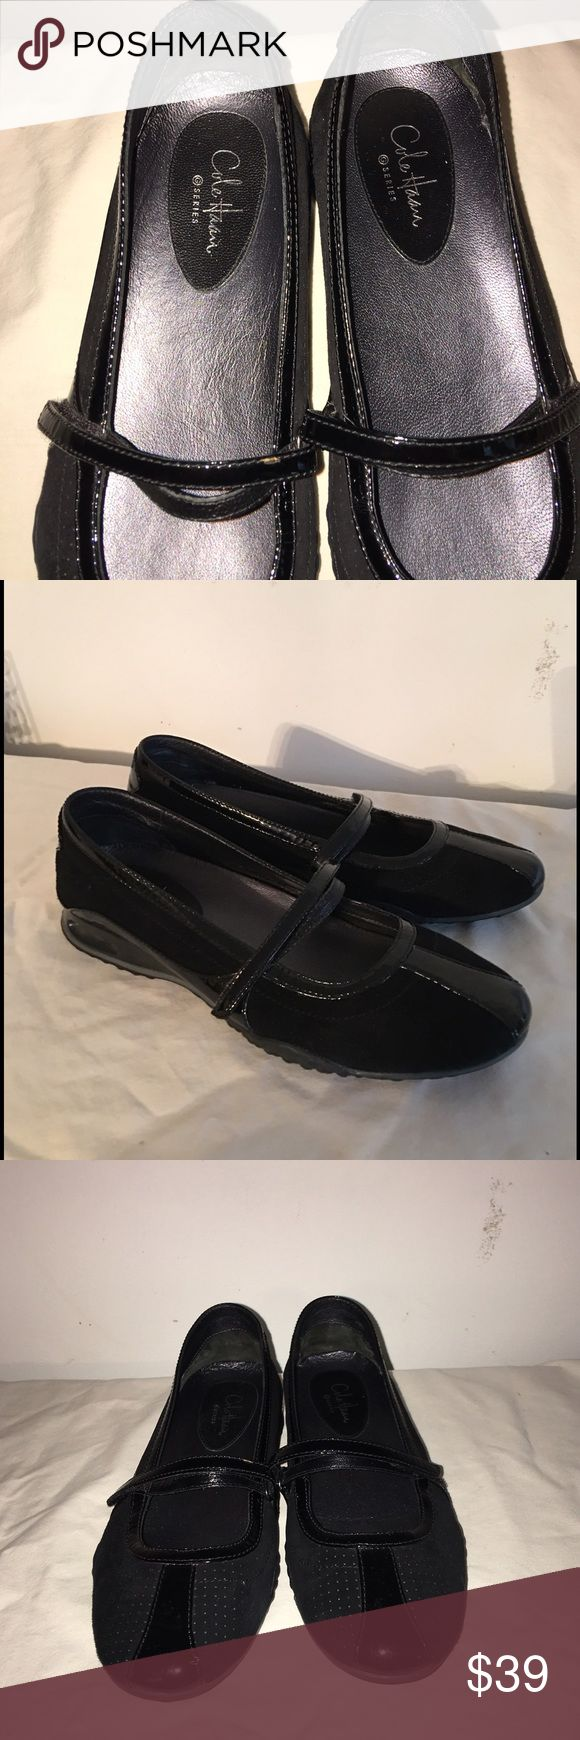 "Cole Haan Nike Air Bris black Mary Jane Shoes 7B Cole Haan Nike Air Bria Mary Janes black suede patent leather trim. Great condition, hardly worn. Rounded toe with adjustable grip strap.  Padded footbed and nonslip soles. Heel is .5"", size 7 B Cole Haan Shoes Flats & Loafers"